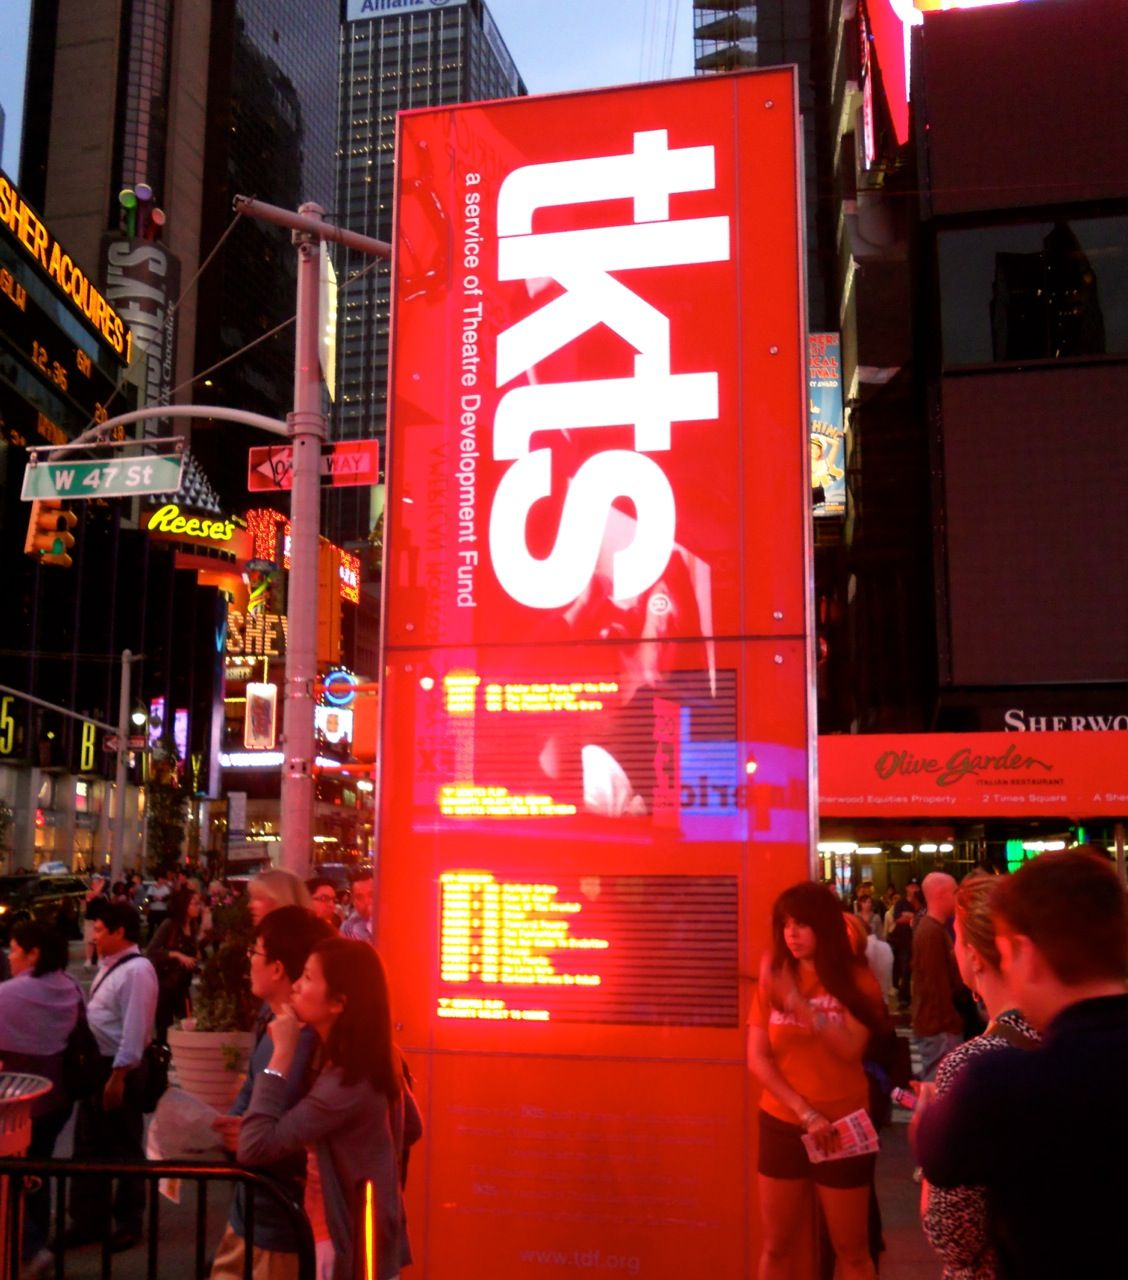 Find Discounted Broadway Show Tickets At The Tkts Booth Located In Times Square A 10 Minute Walk From The Empire Nyc Tourism Broadway Show Tickets Broadway